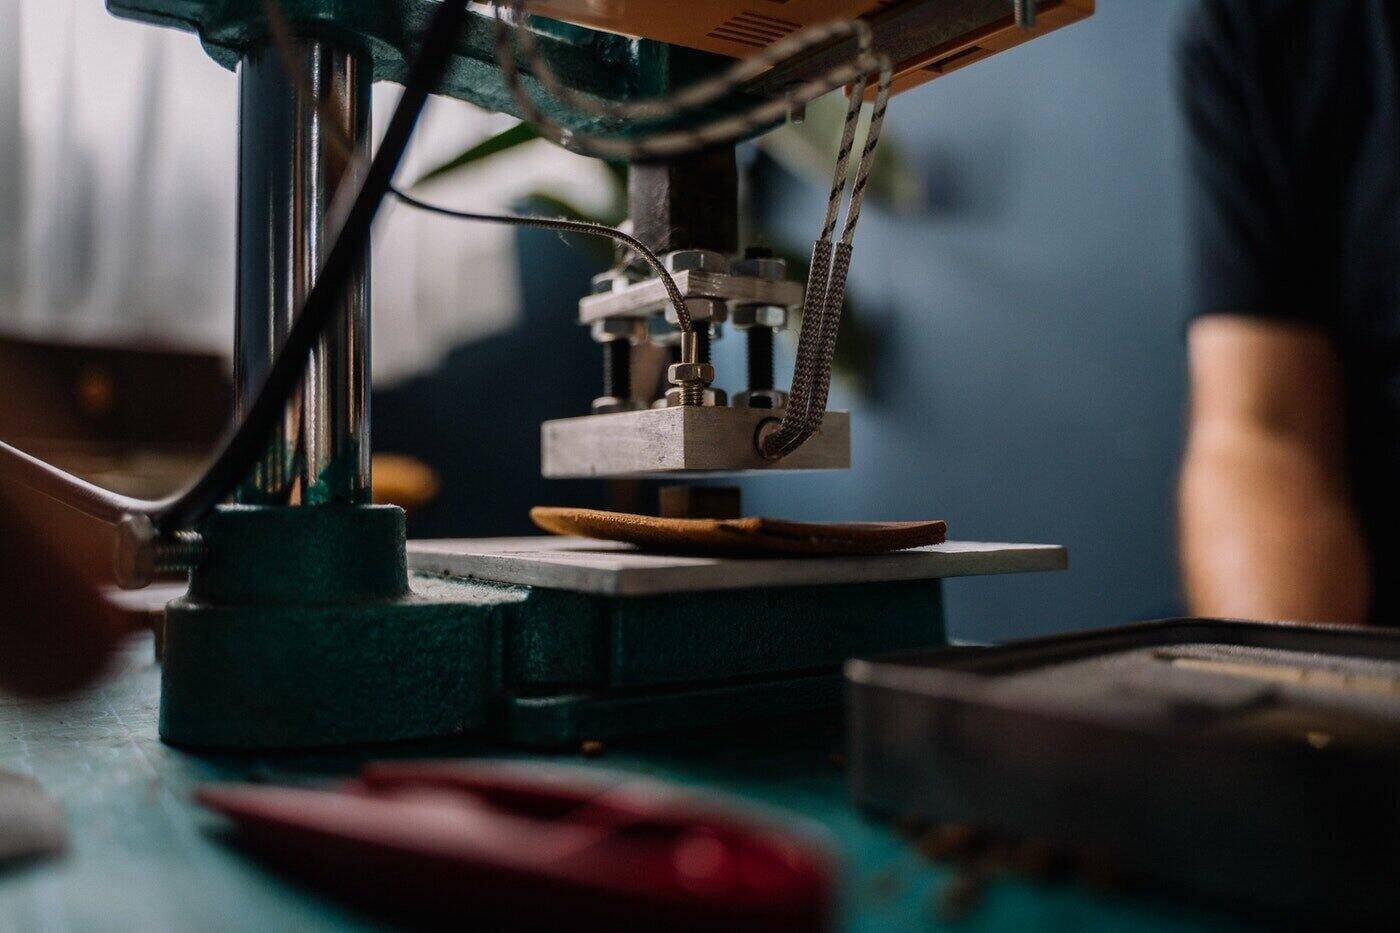 close up of industrial sewing machine with man's arm in background - how to make ethical fashion part of your wardrobe